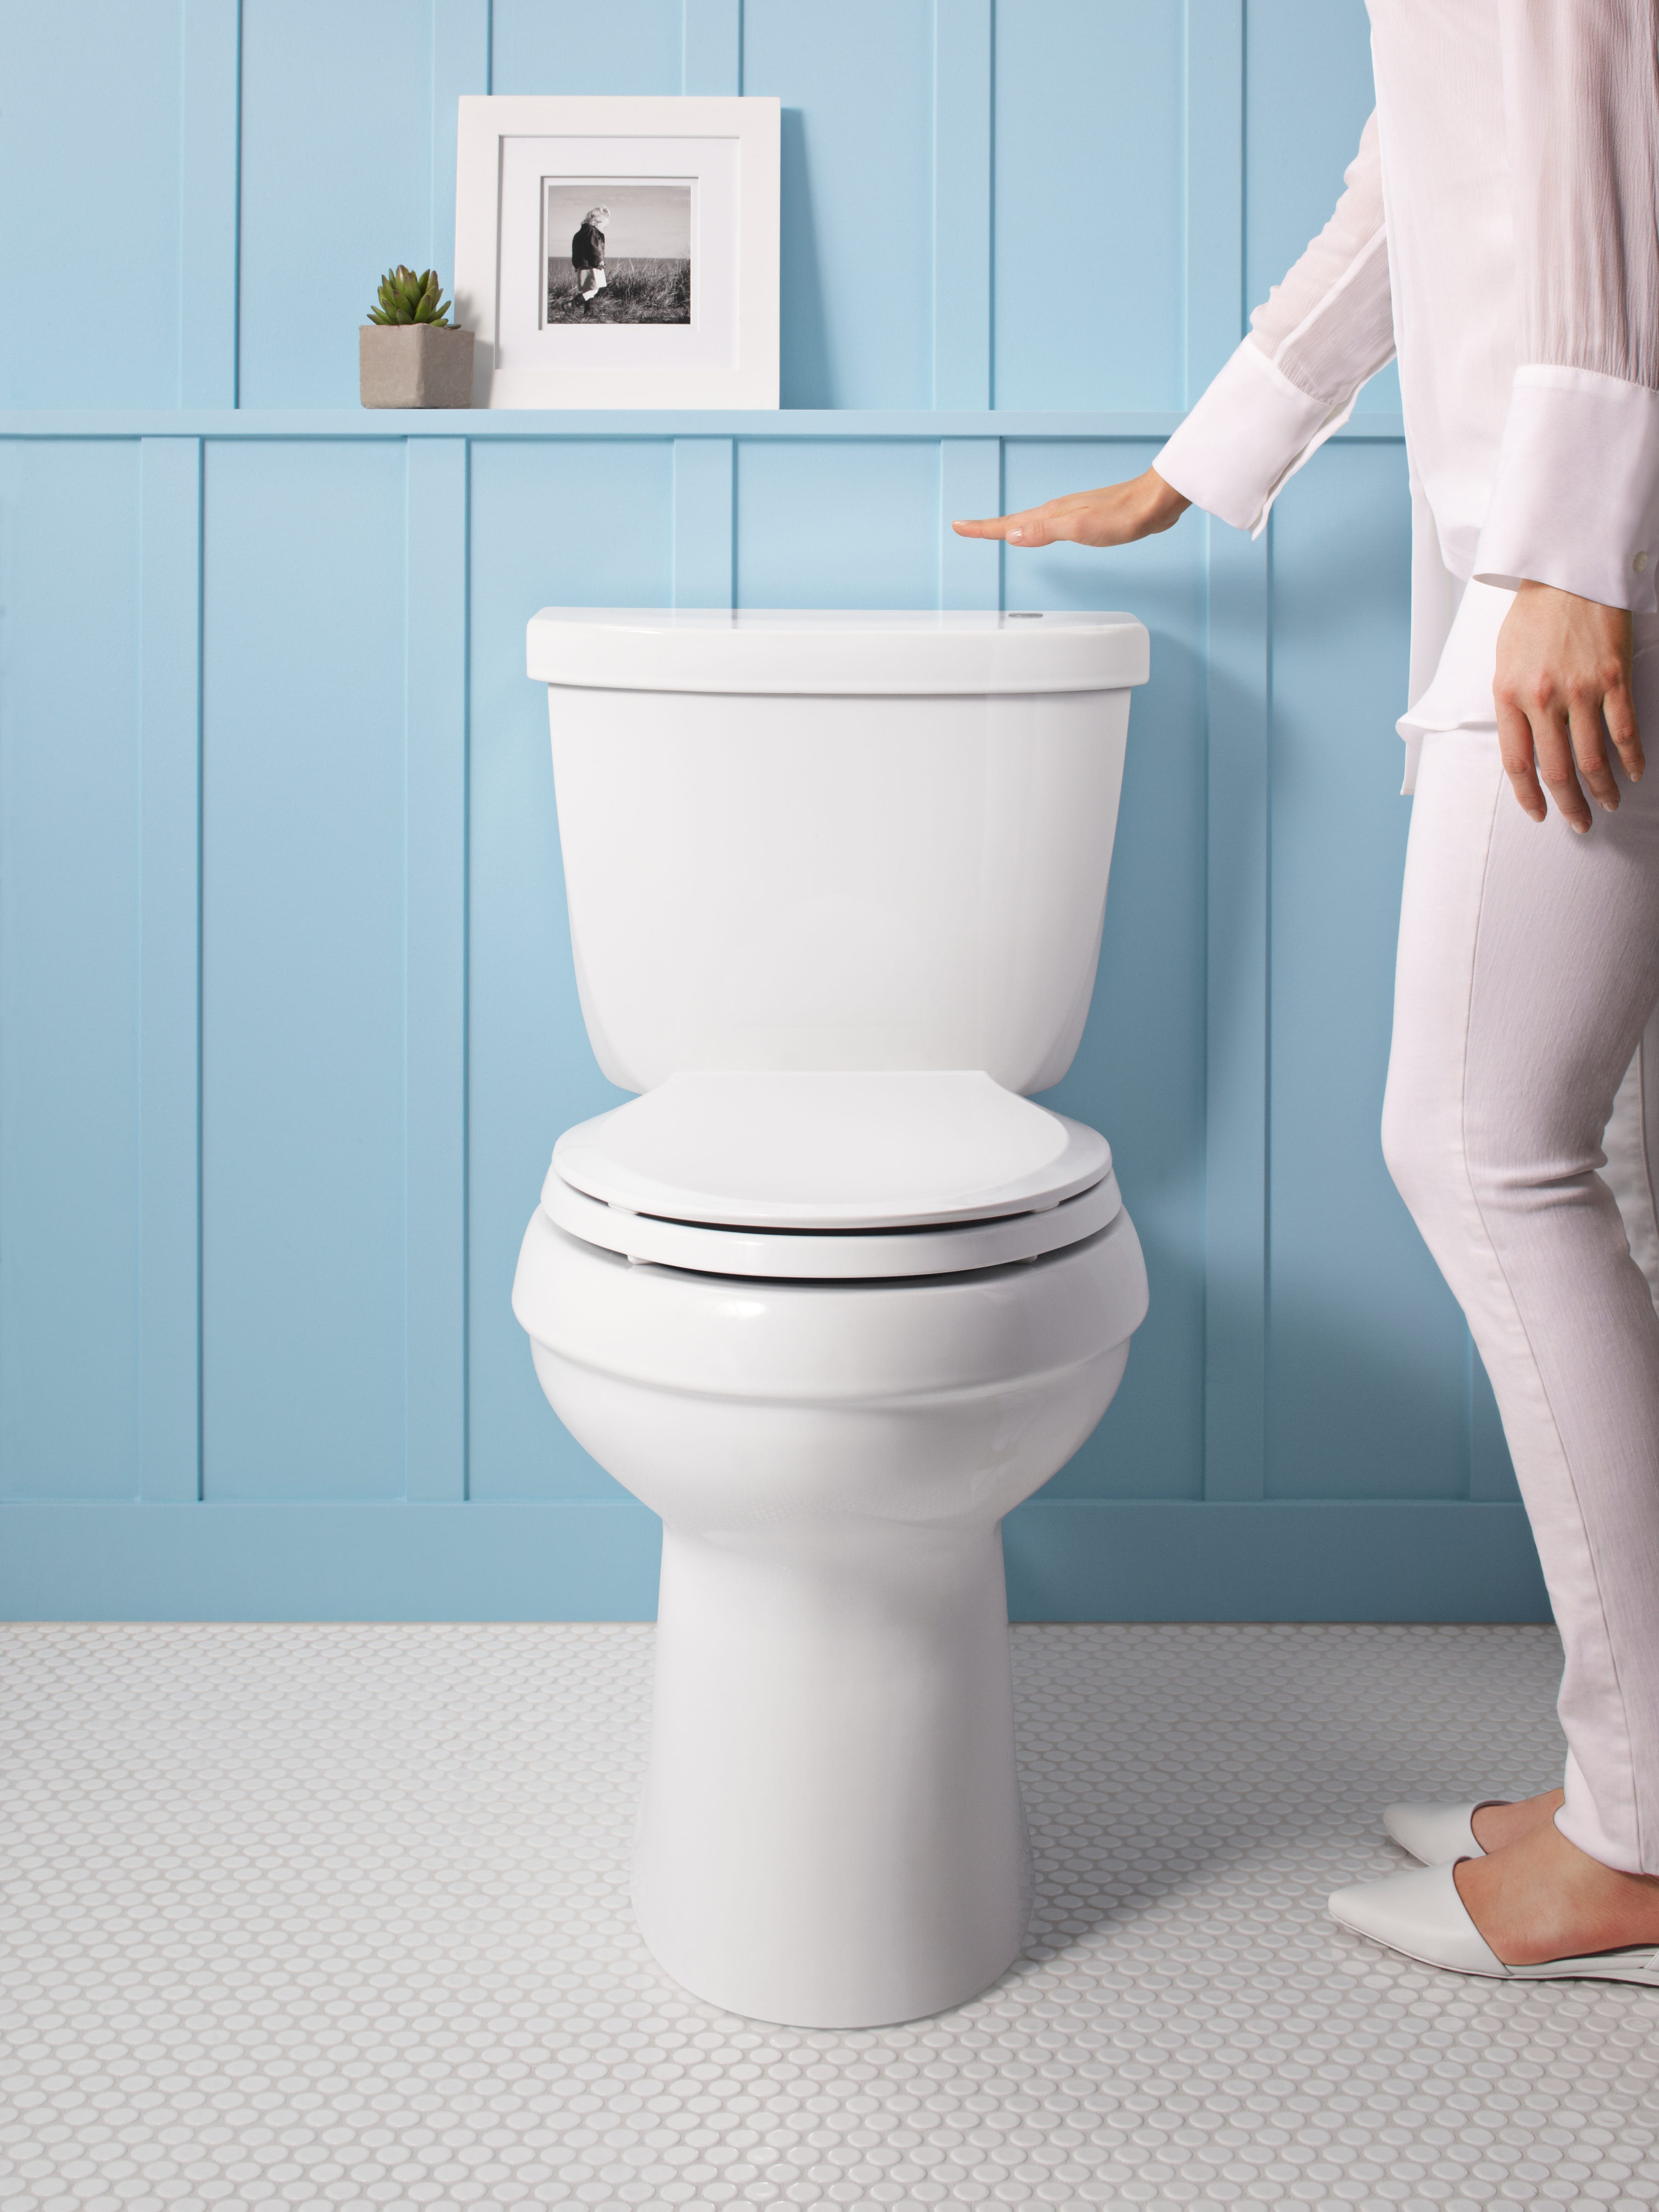 touchless cimarron toilet lets you experience notouch flushing at home photo kohler